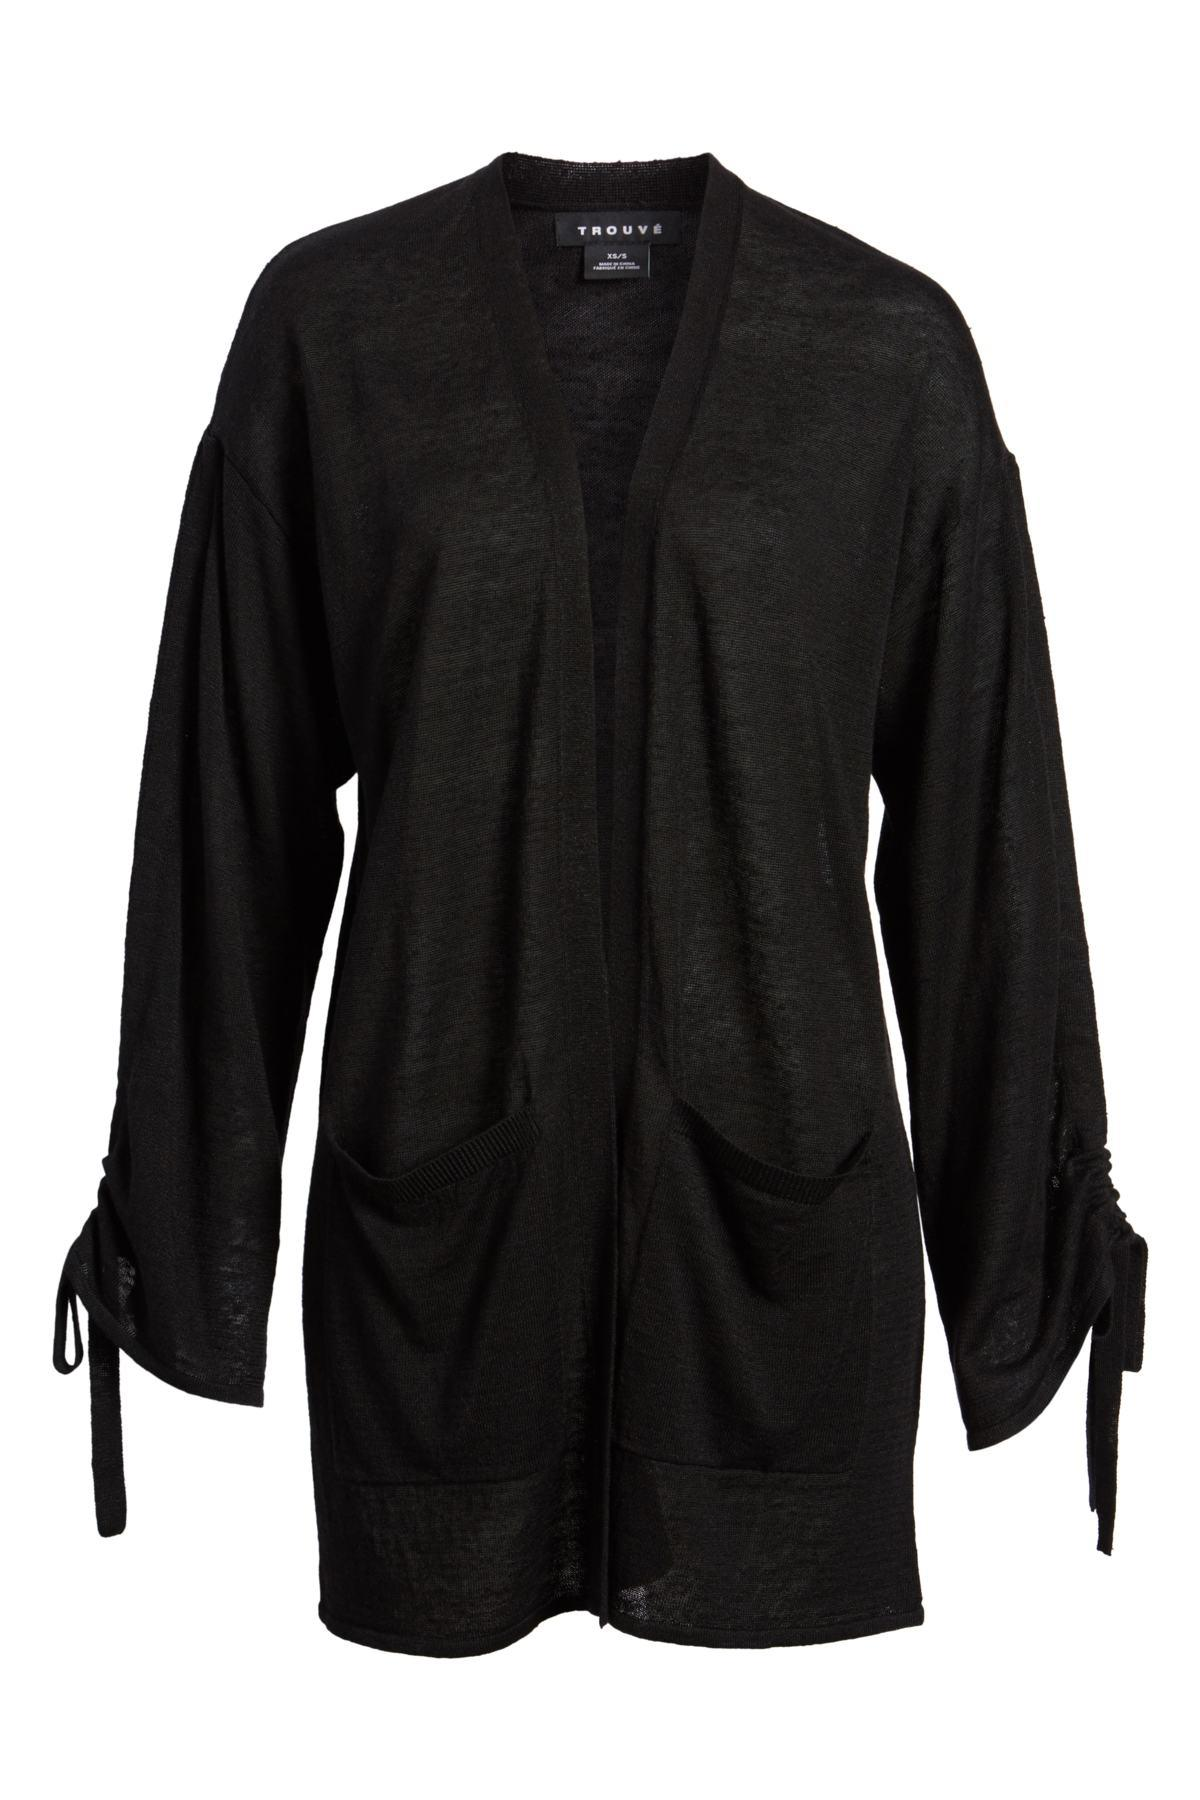 Lyst - Trouvé Trouv  Ruched Sleeve Cardigan in Black 5743e6473